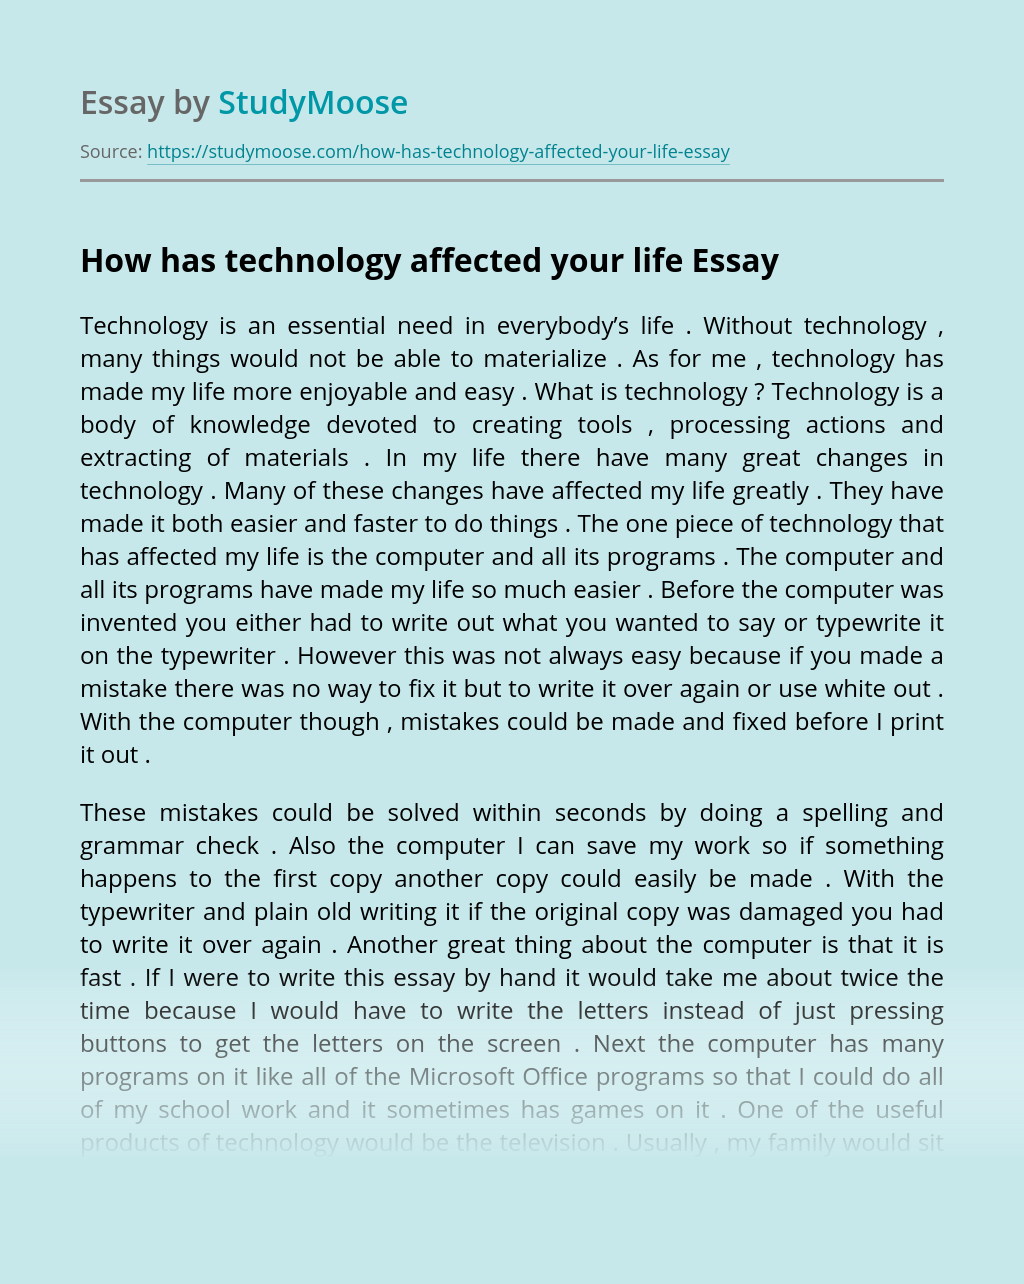 How has technology affected your life